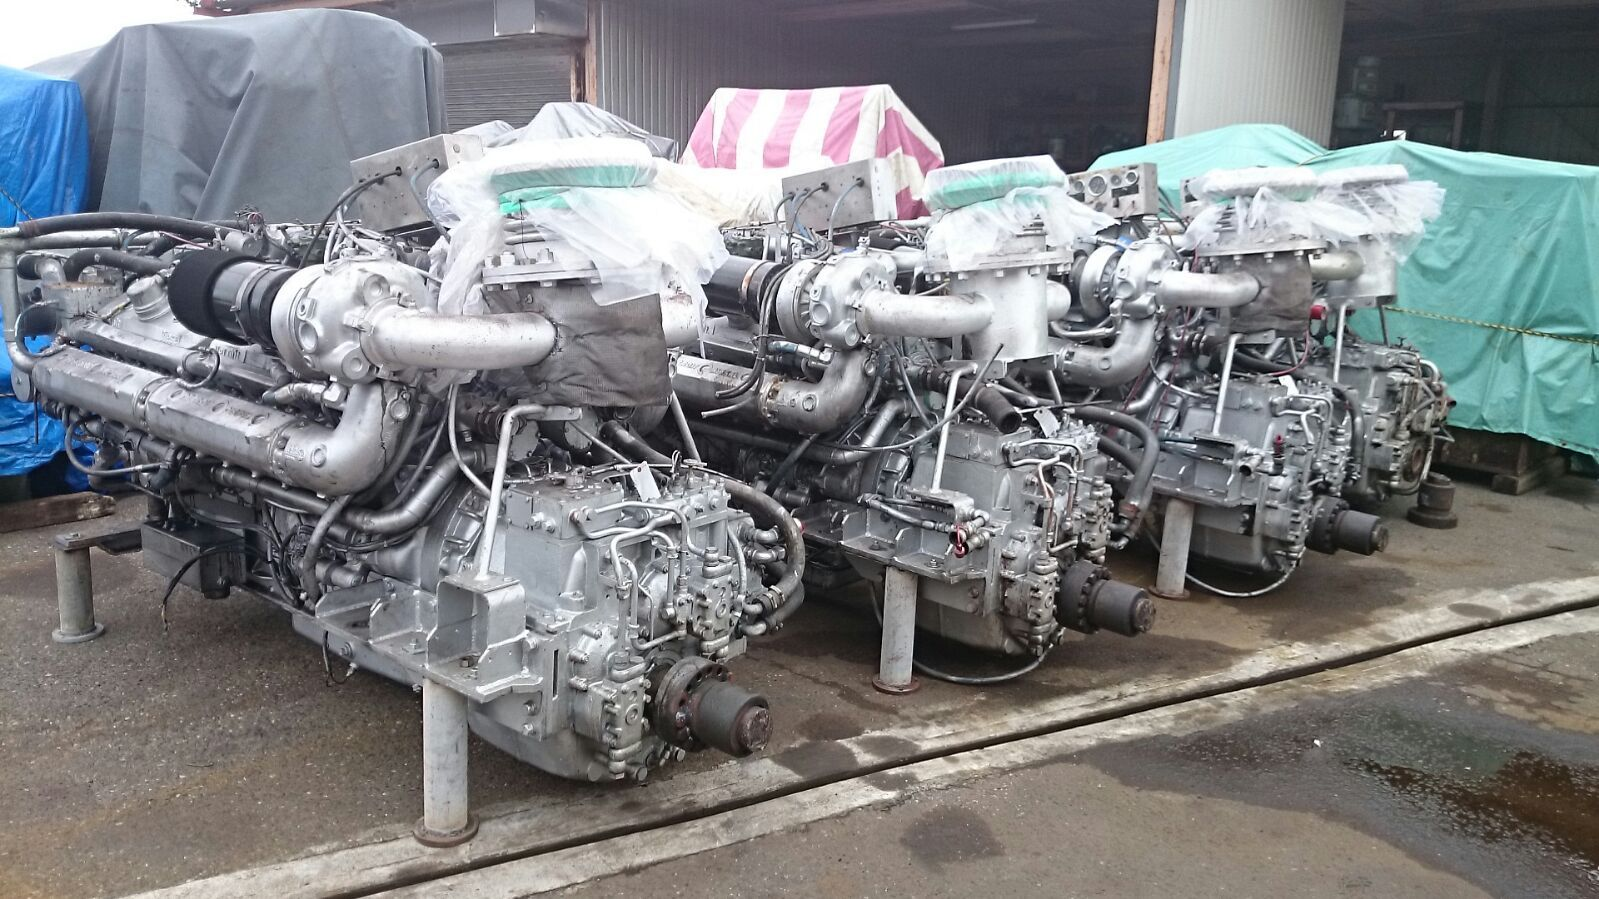 16V-92T USED MARINE ENGINES J&T